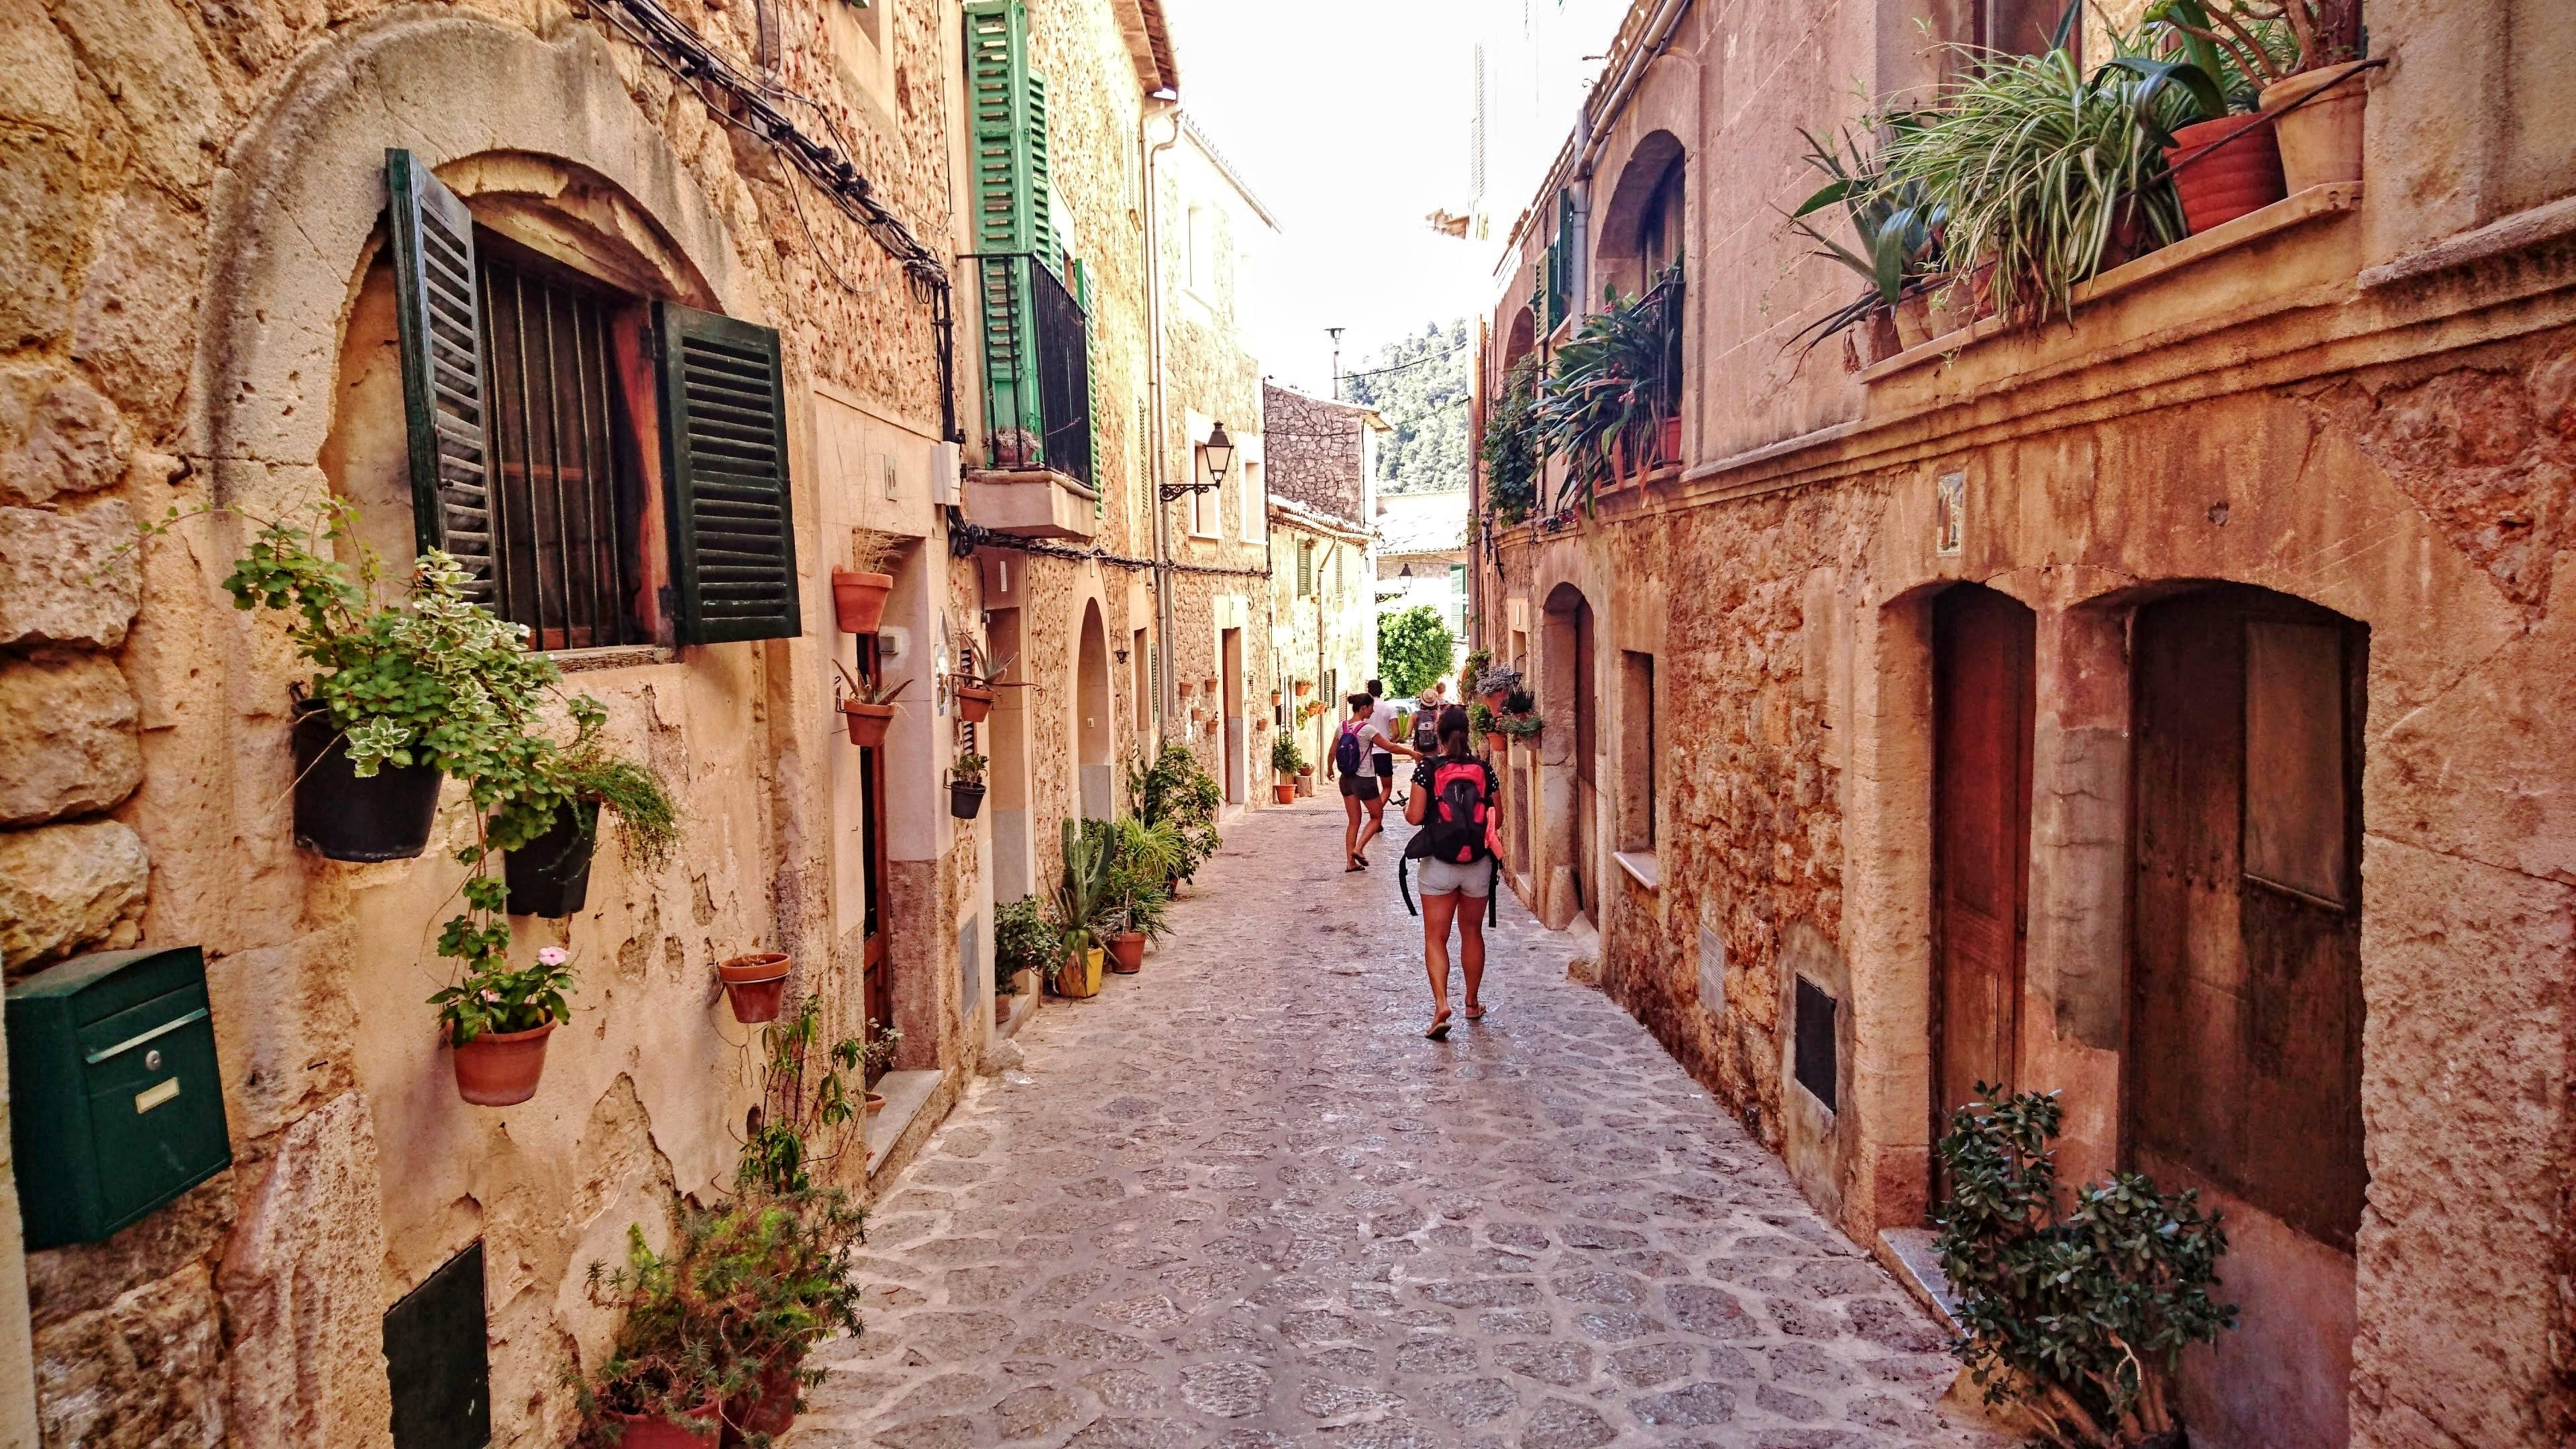 Photo 3: Valldemossa, le plus beau village mallorquin